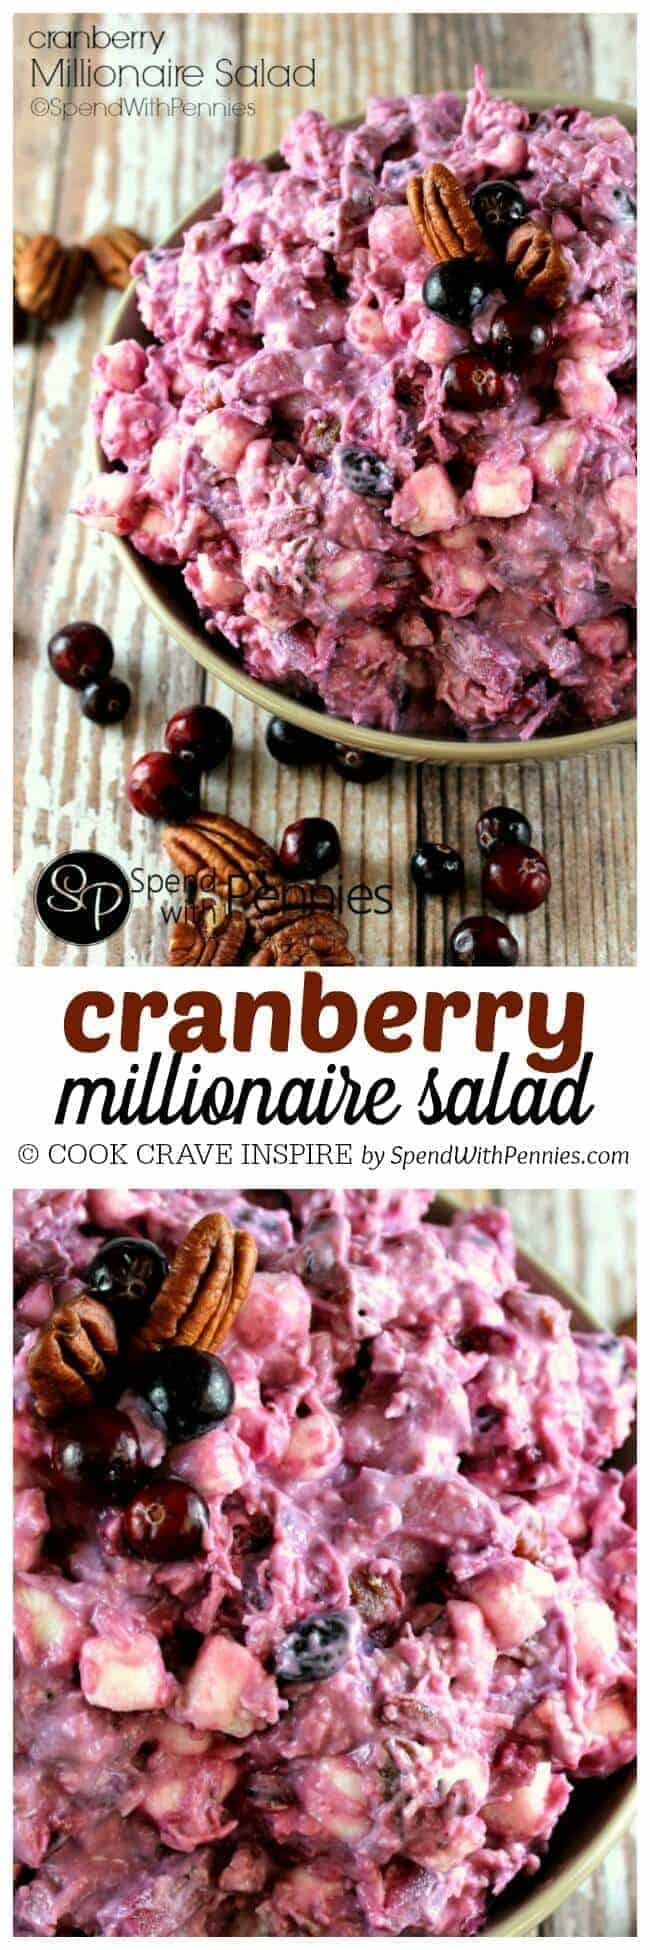 a cranberry salad with pecans with a title